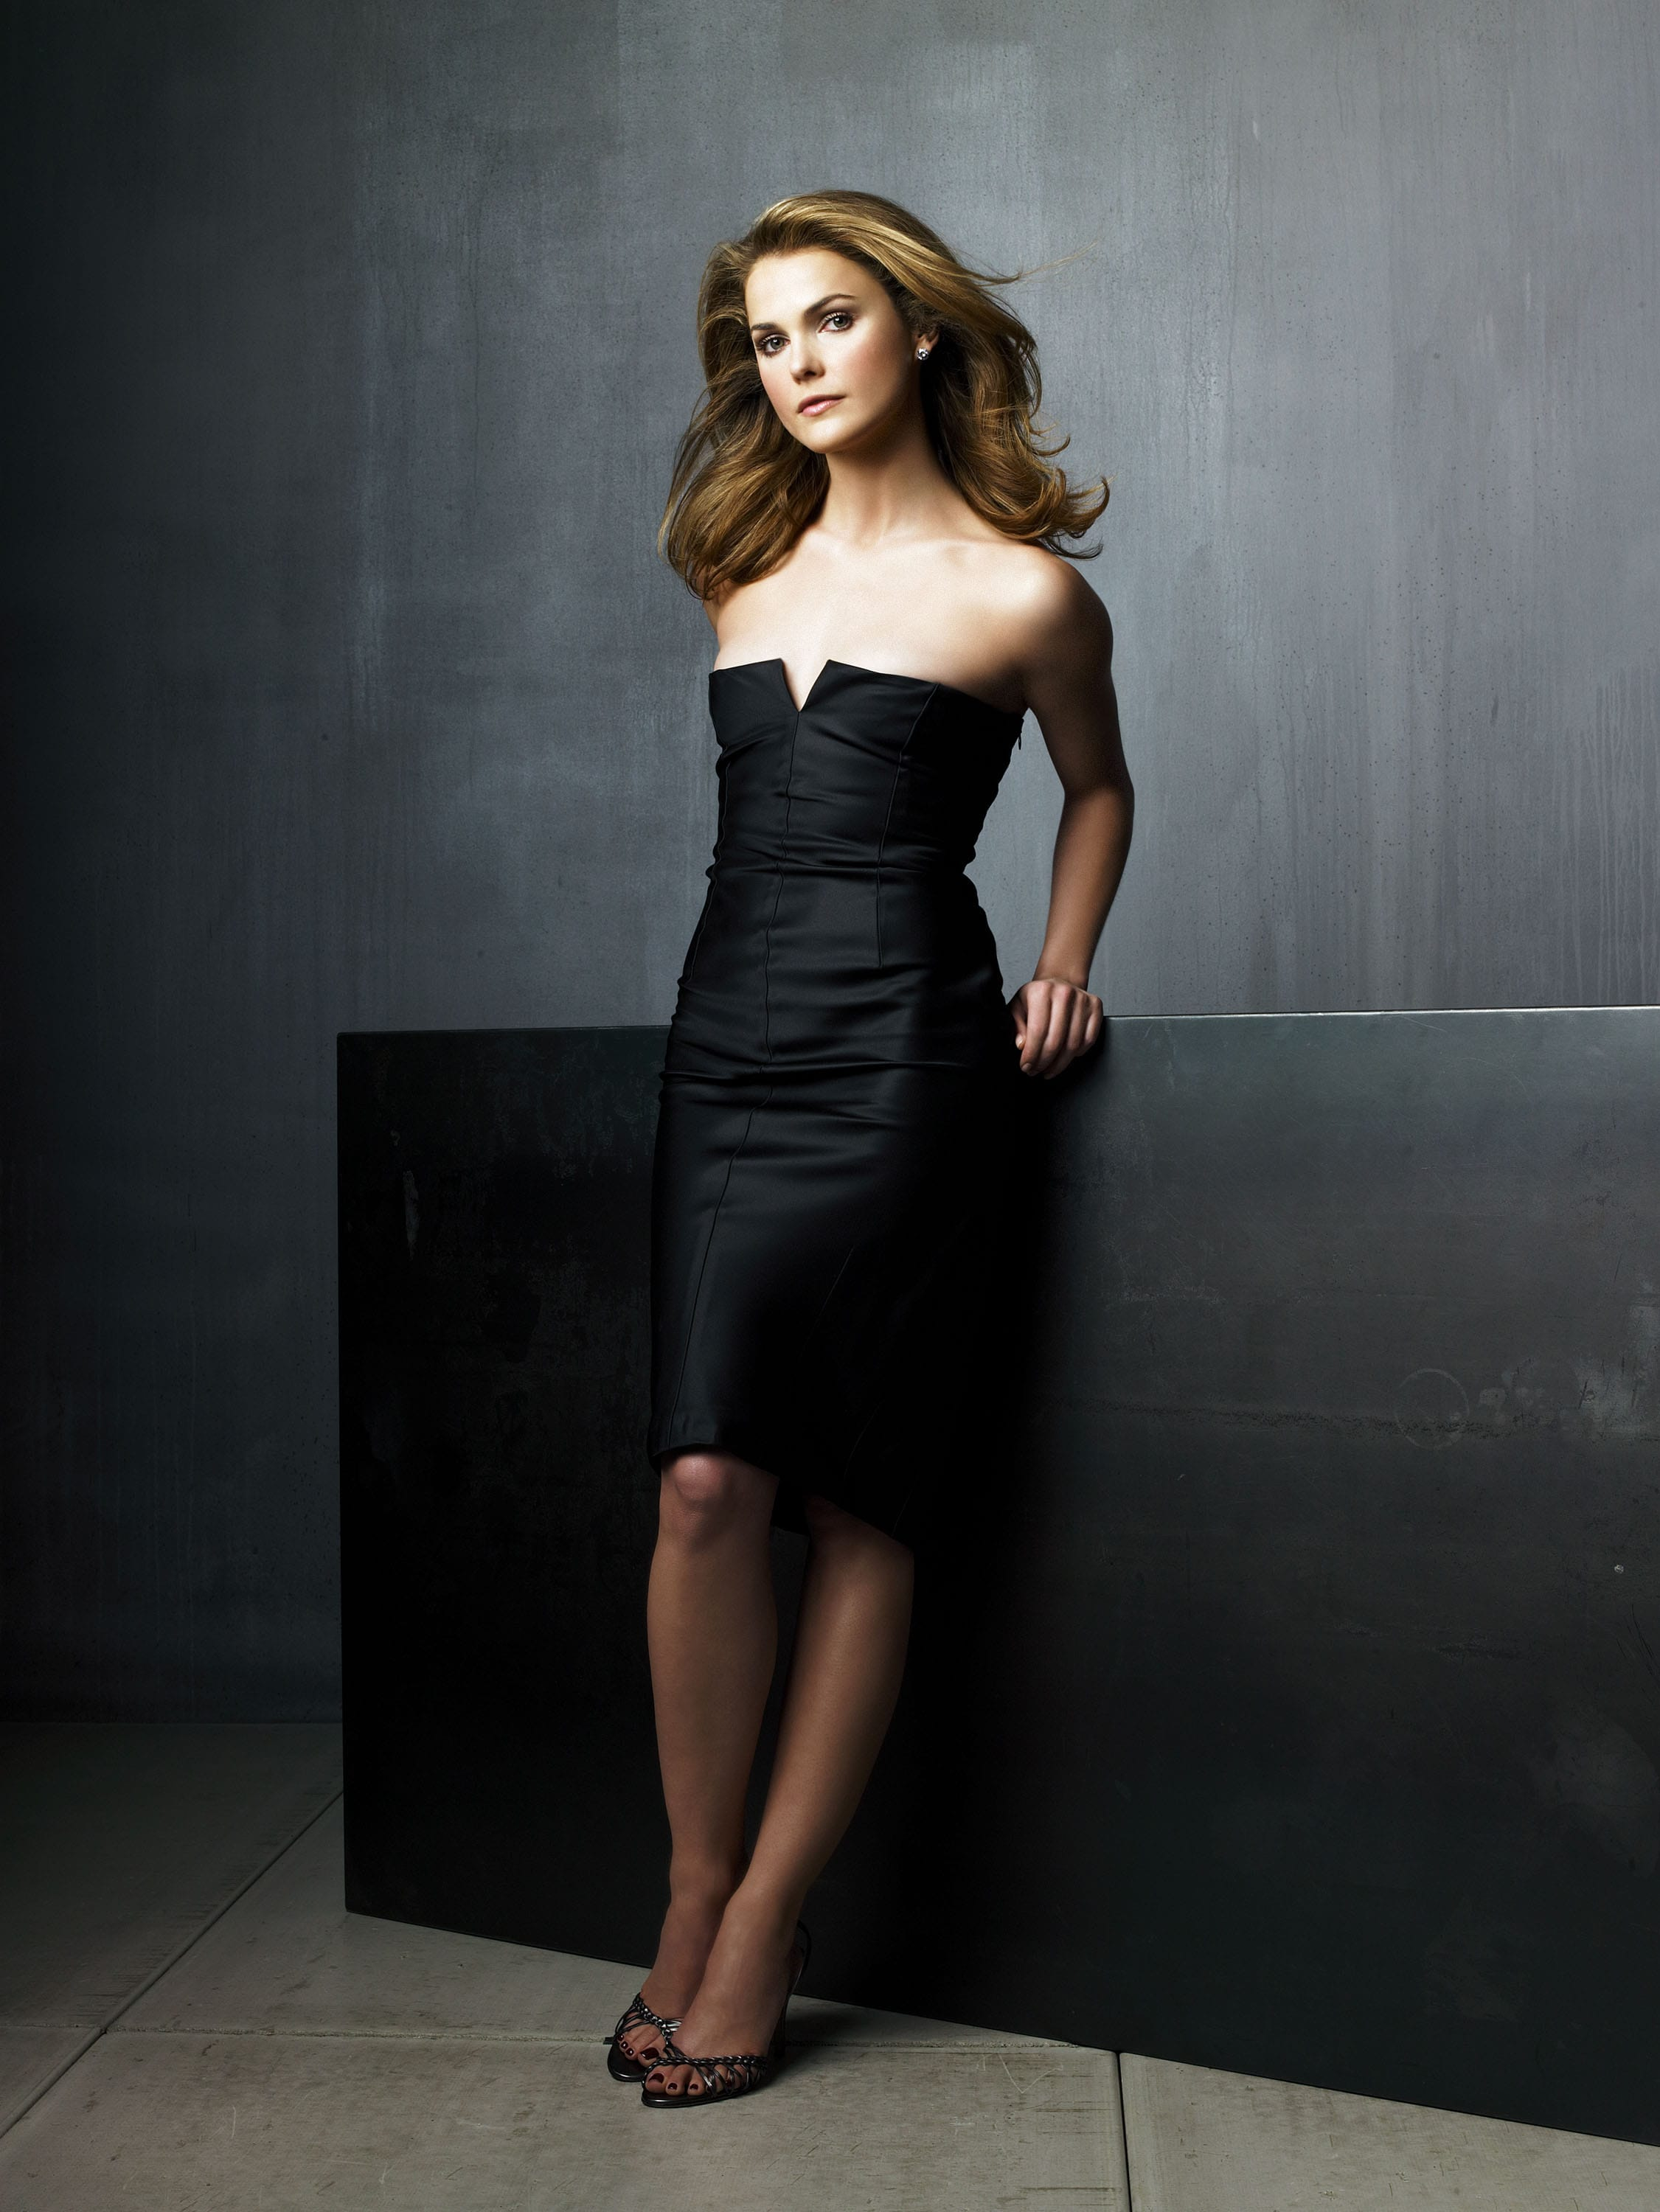 Keri Russell Backgrounds